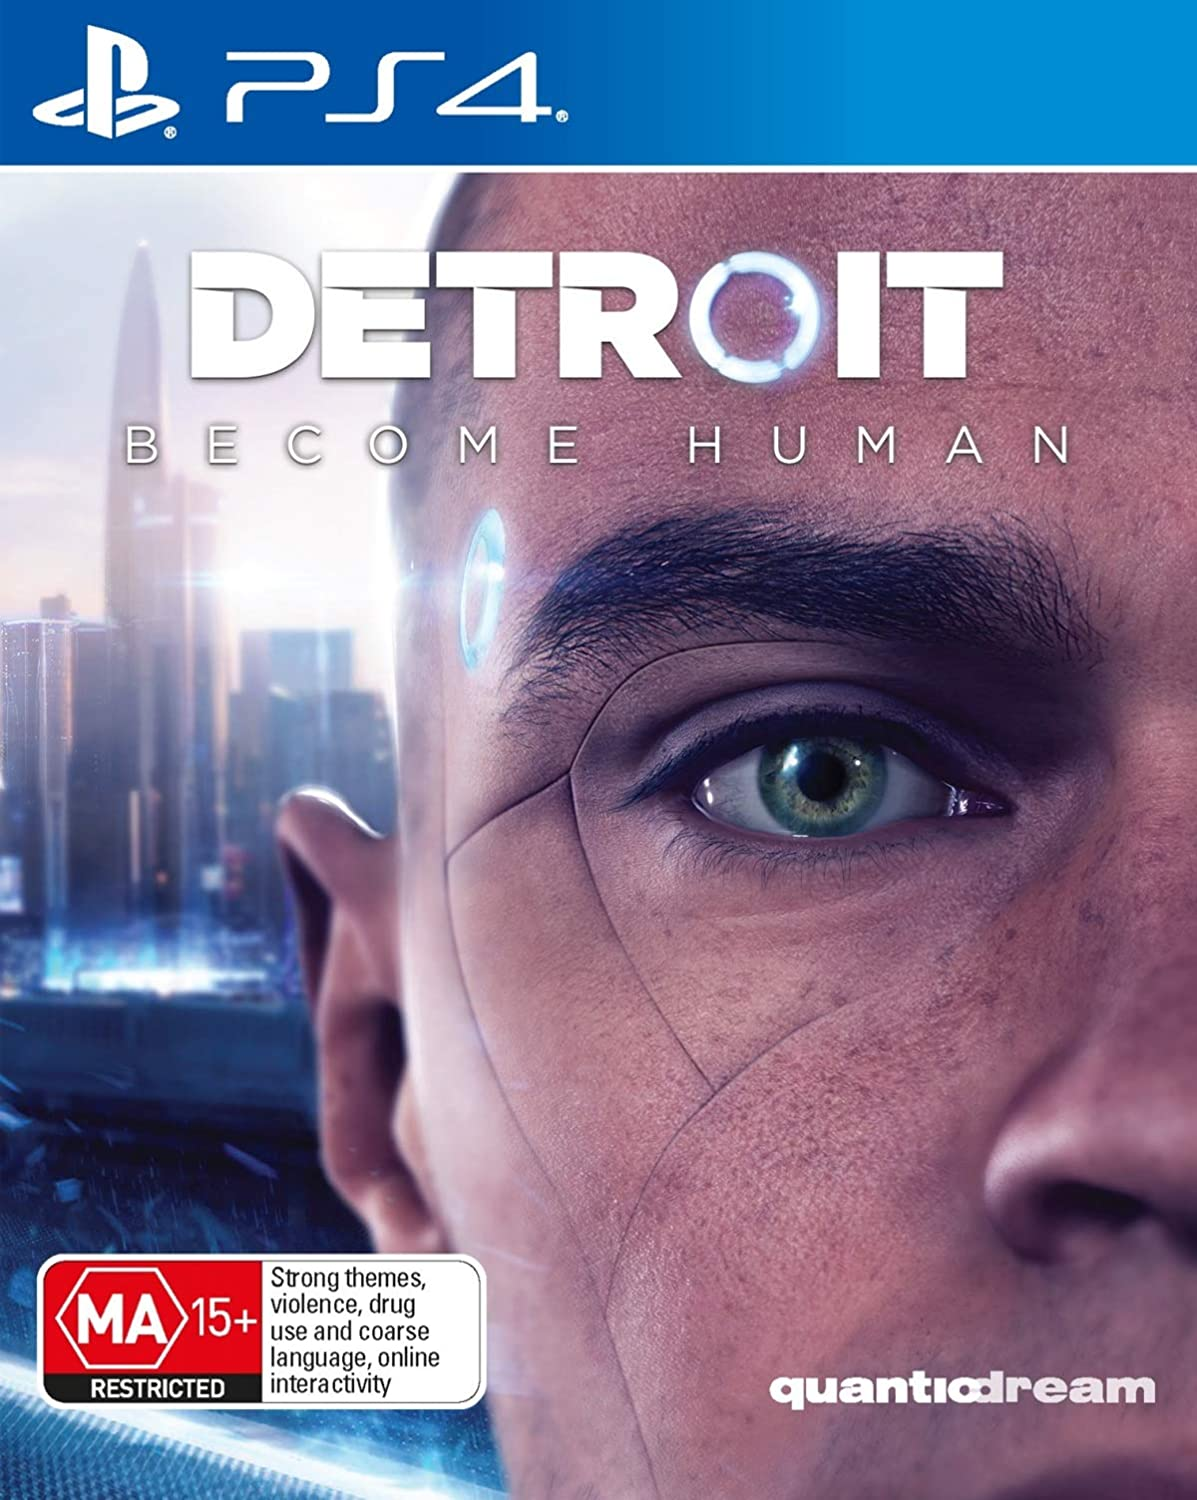 Amazon.com: Detroit Become Human - Playstation 4 (PS4 ...